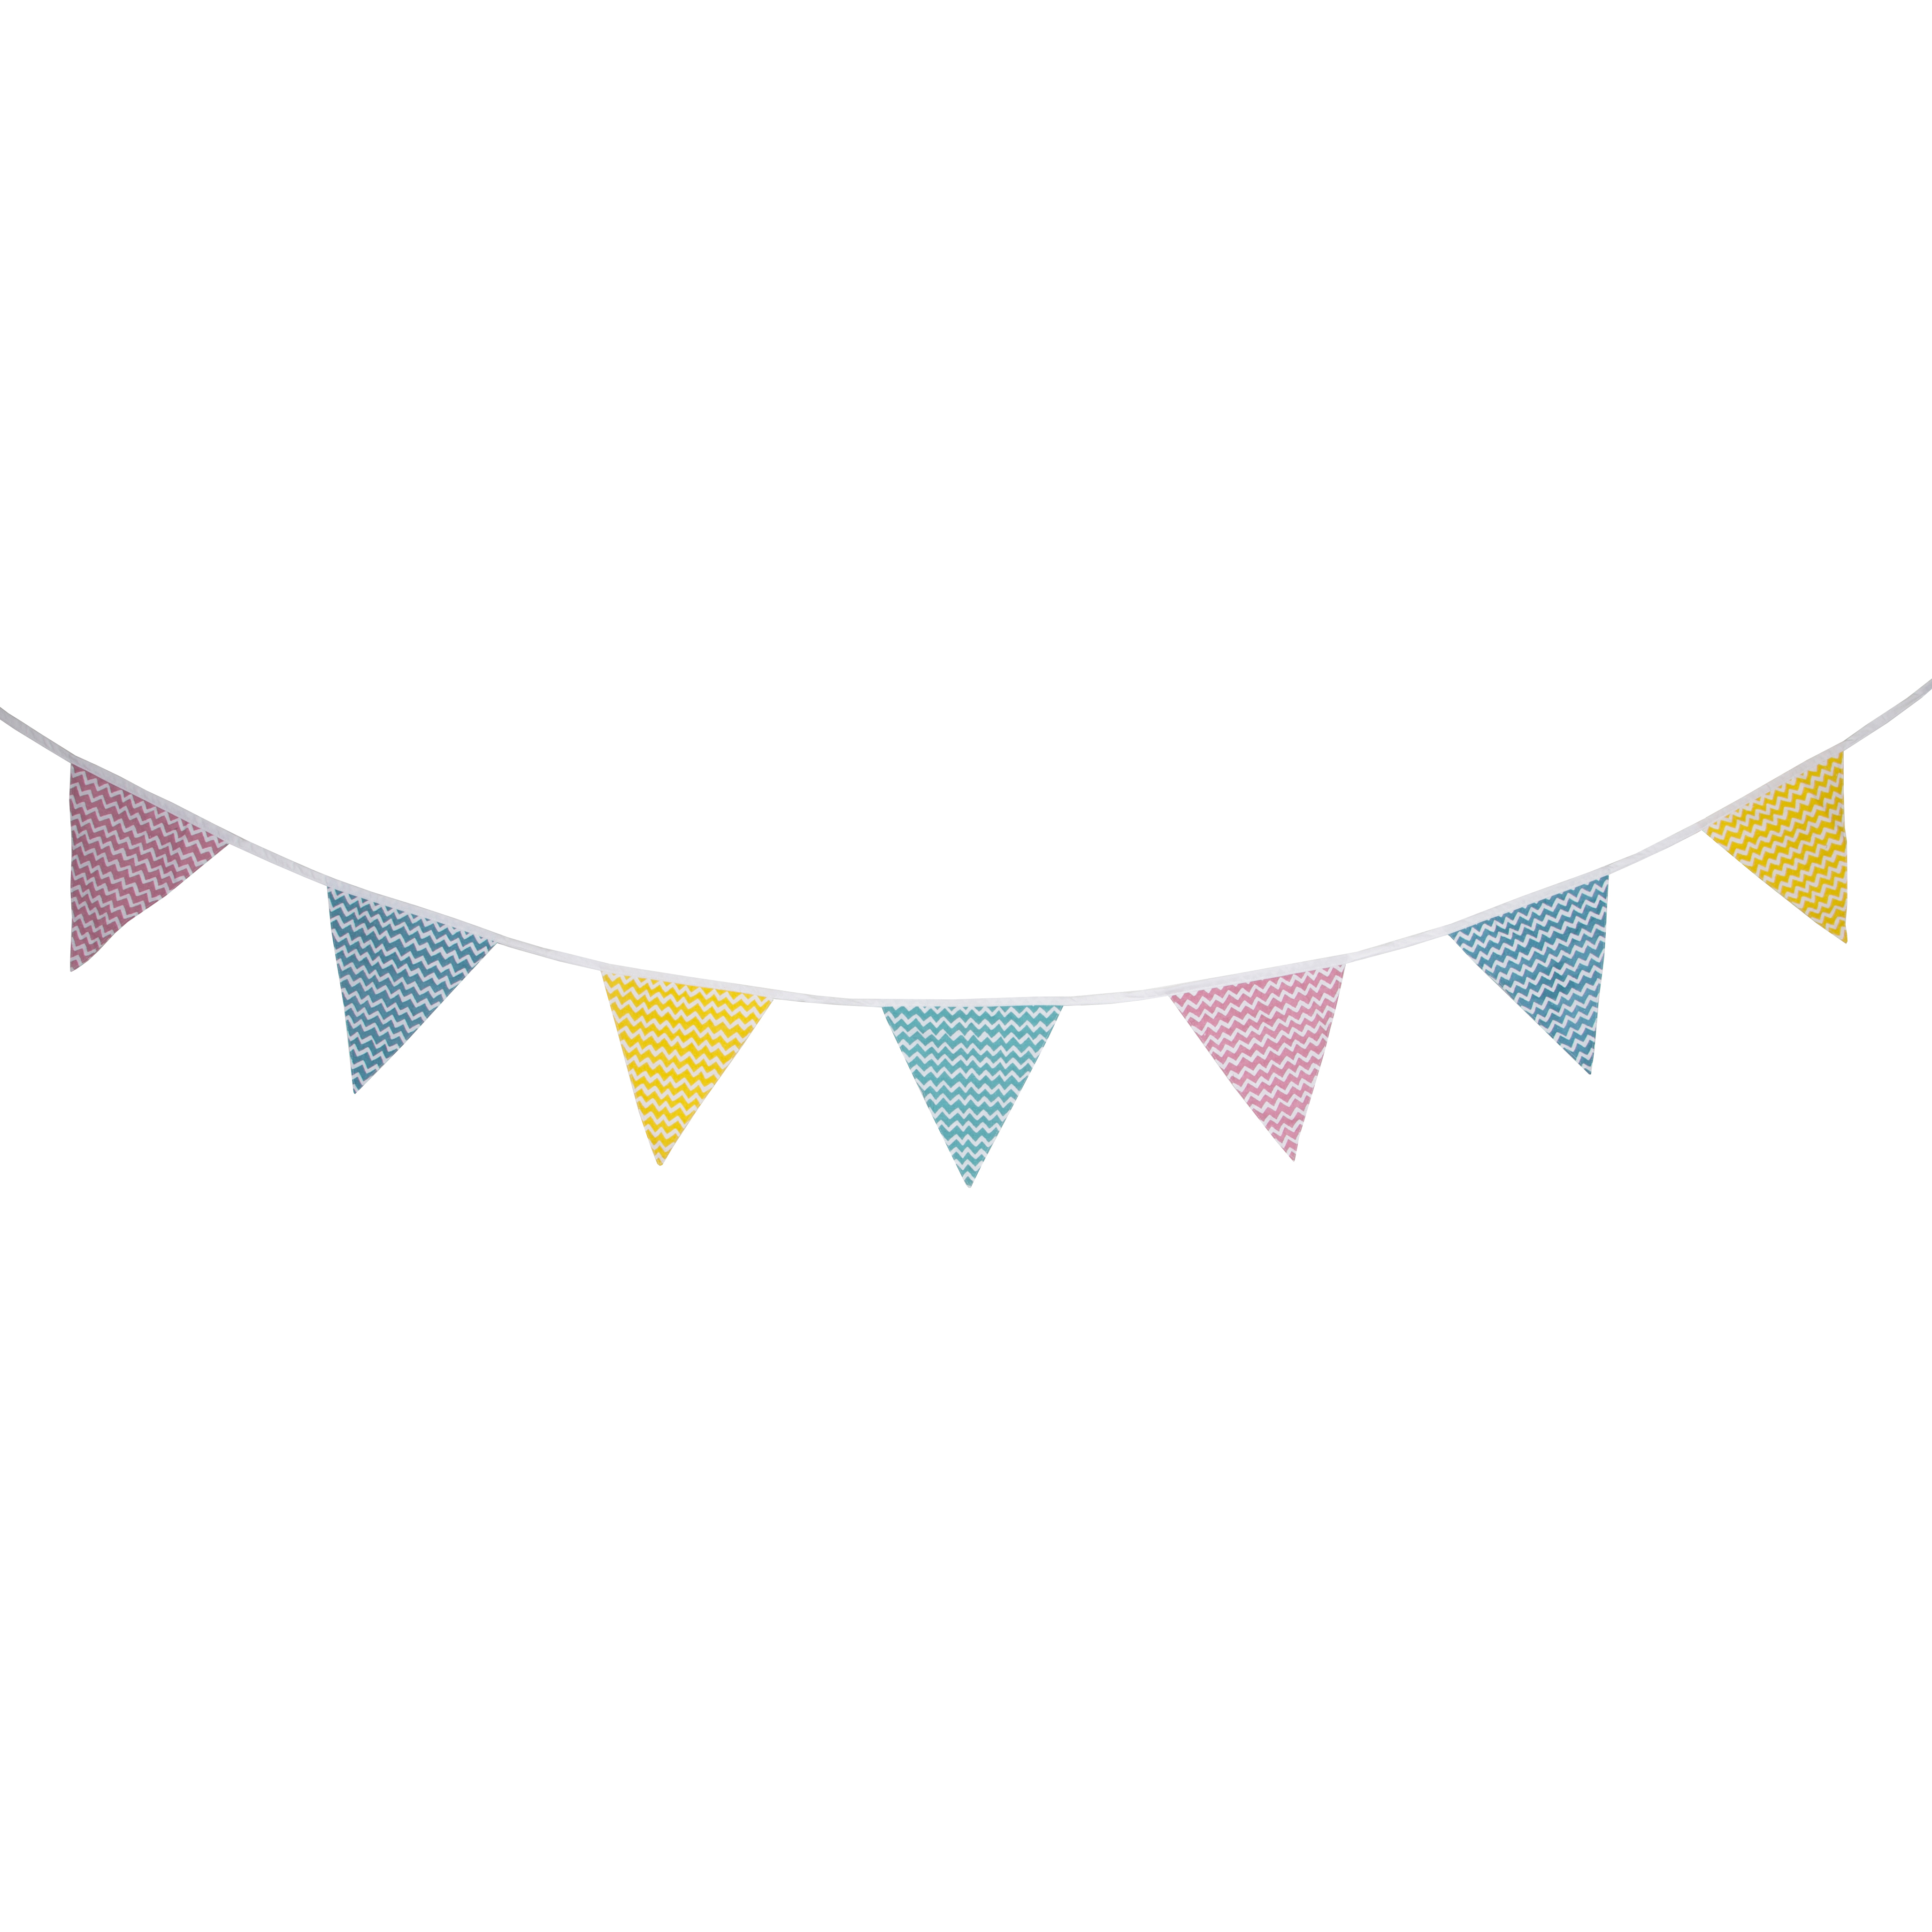 Boho clipart bunting. Chevron in a pastel